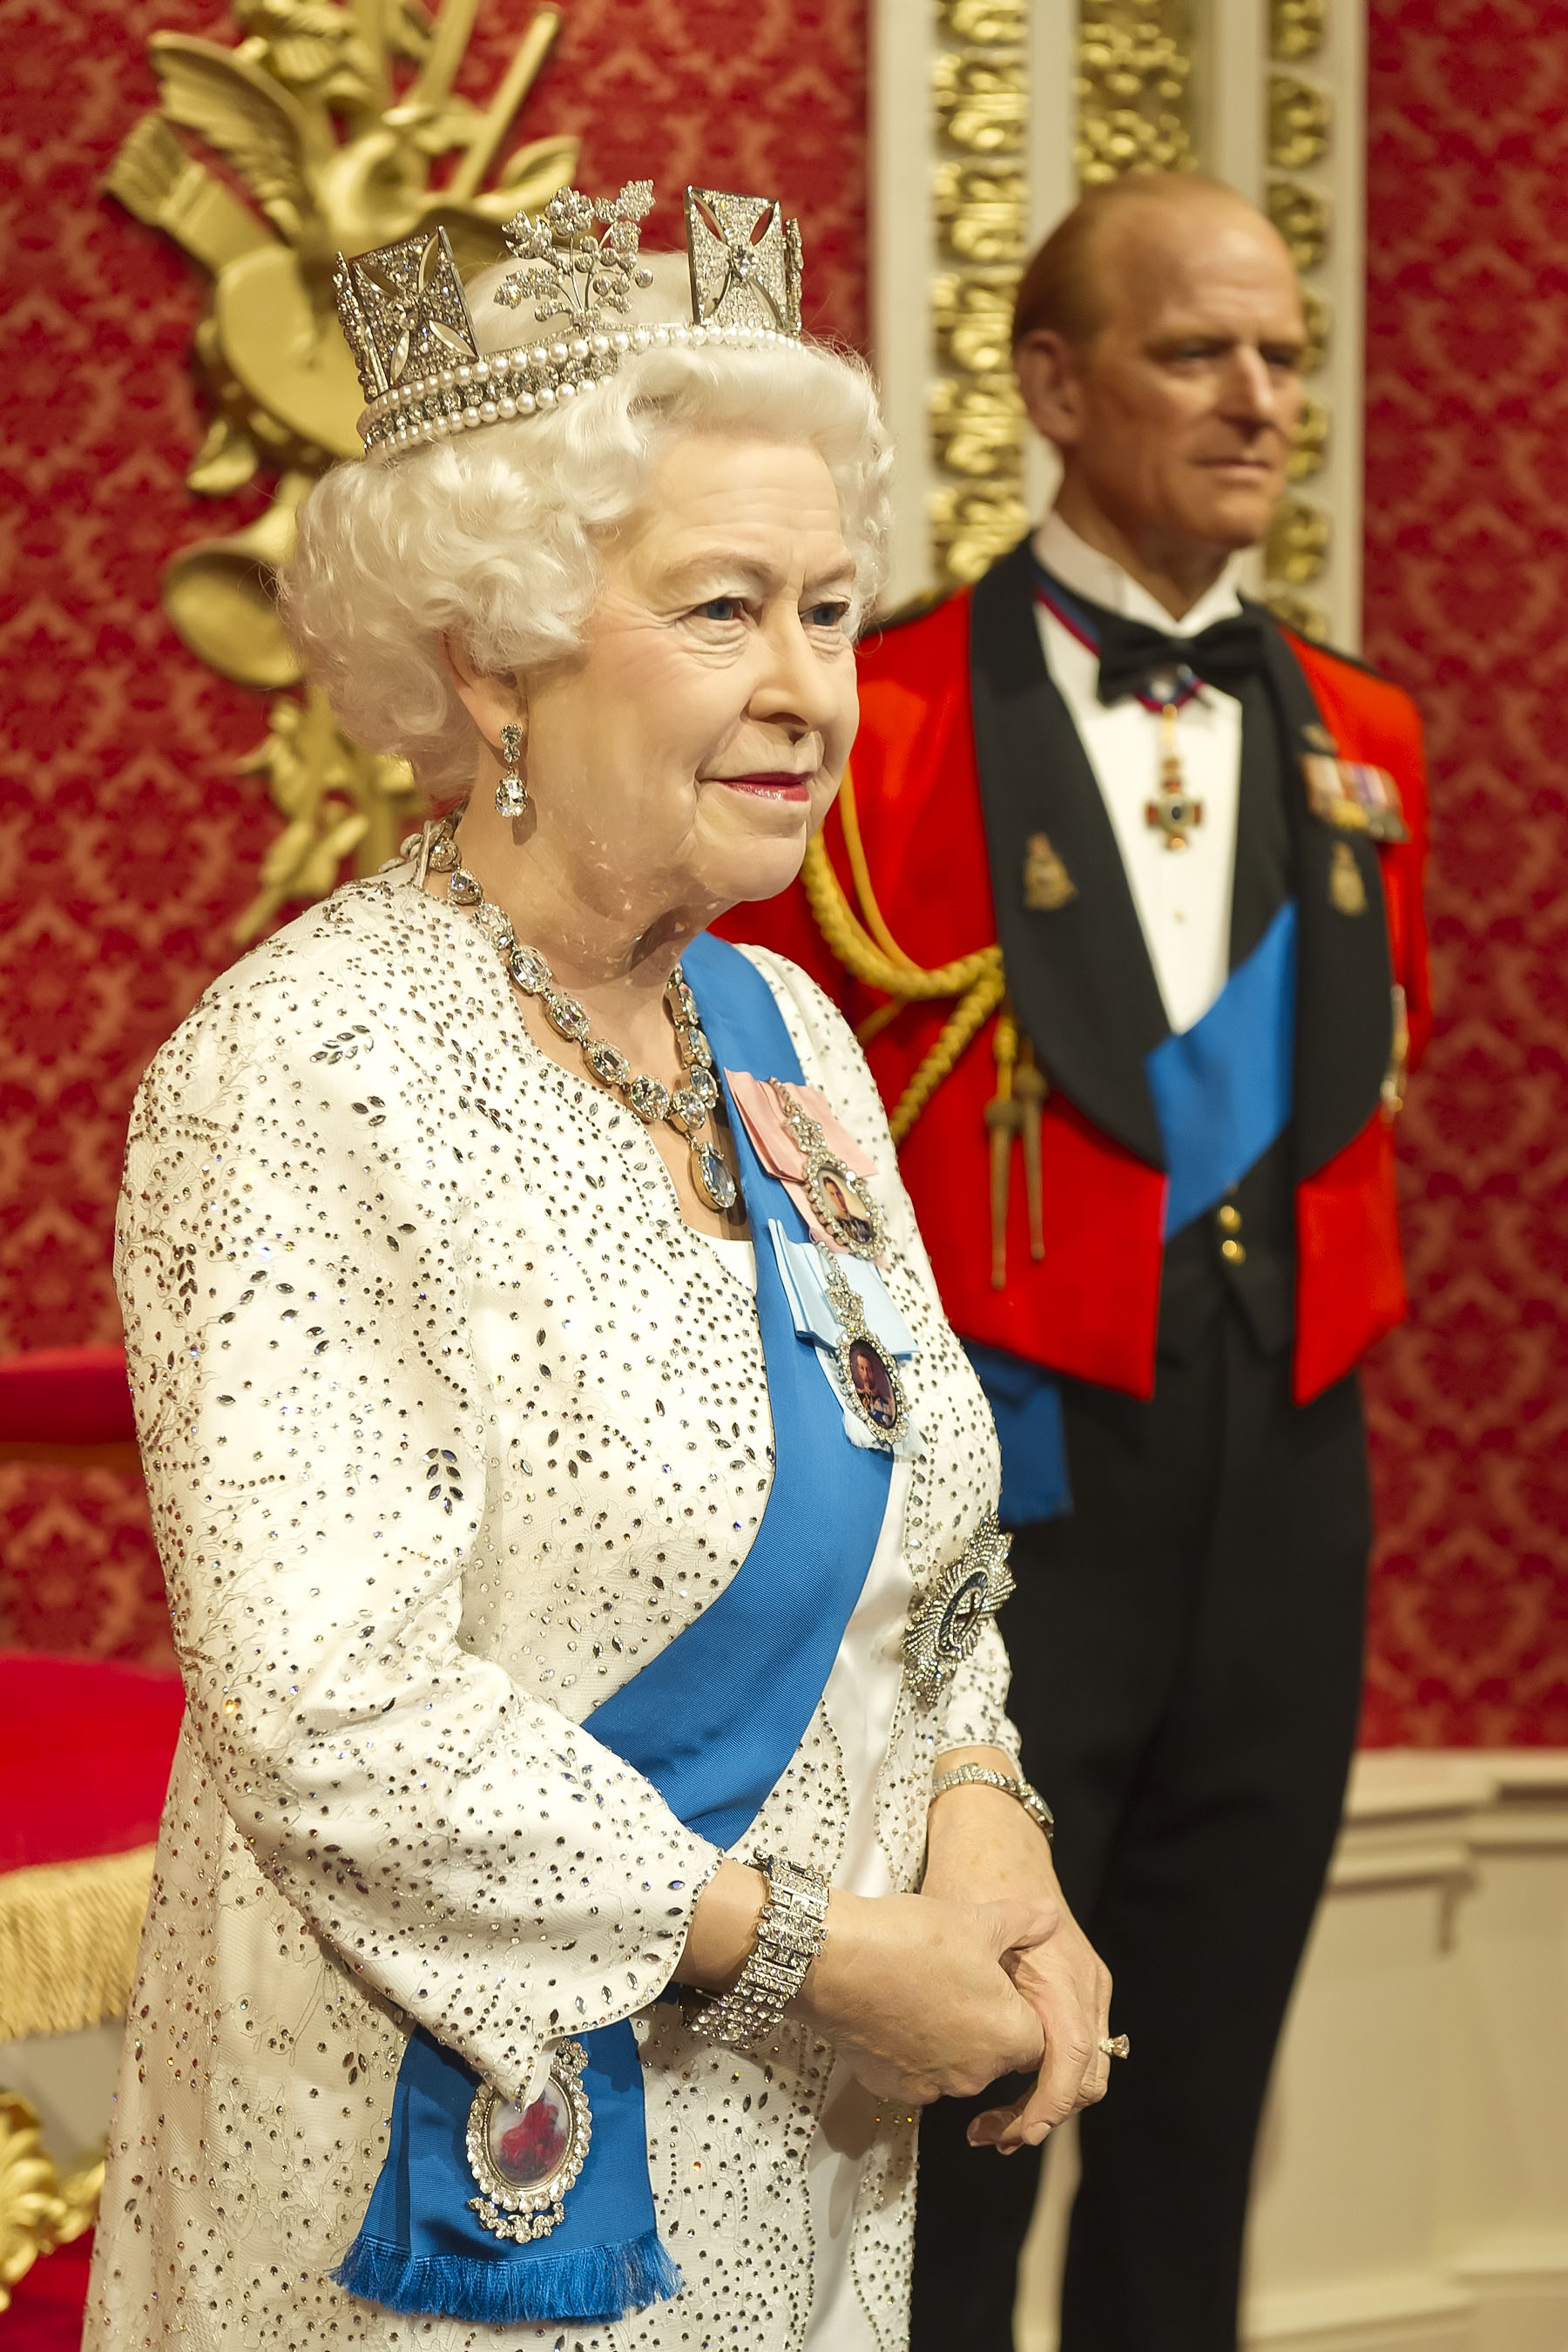 Queen Elizabeth II figure with Duke of Edinburgh at Madame Tussauds